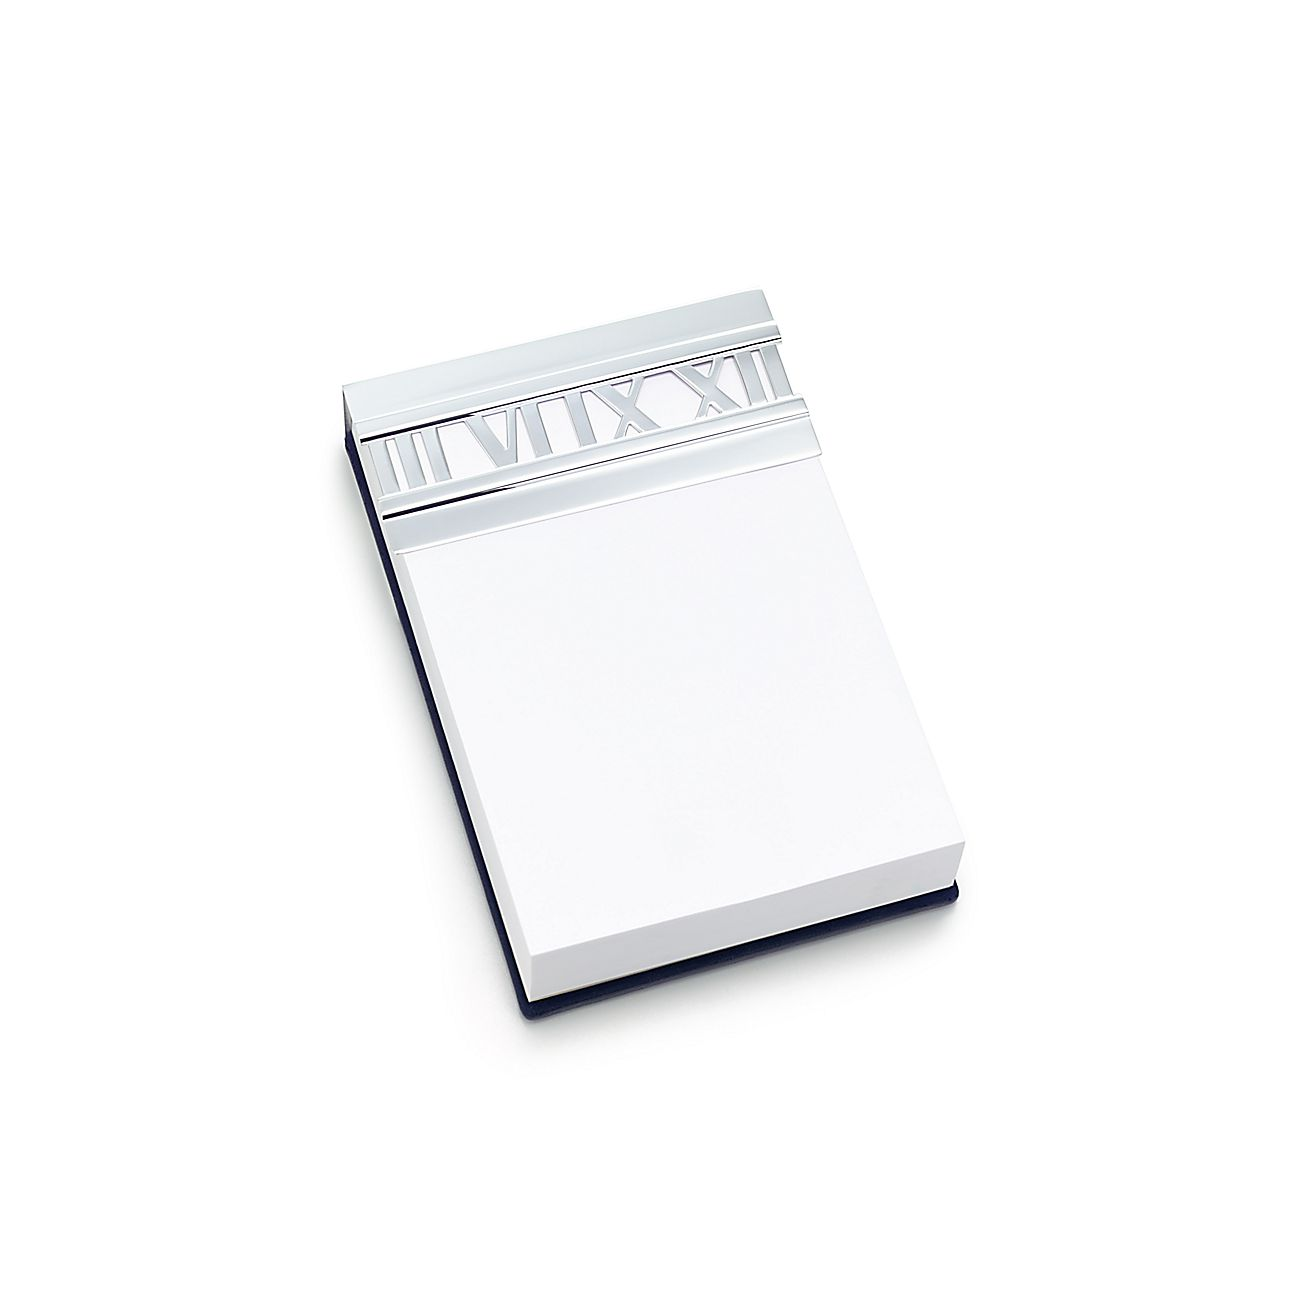 Atlas® memo pad holder